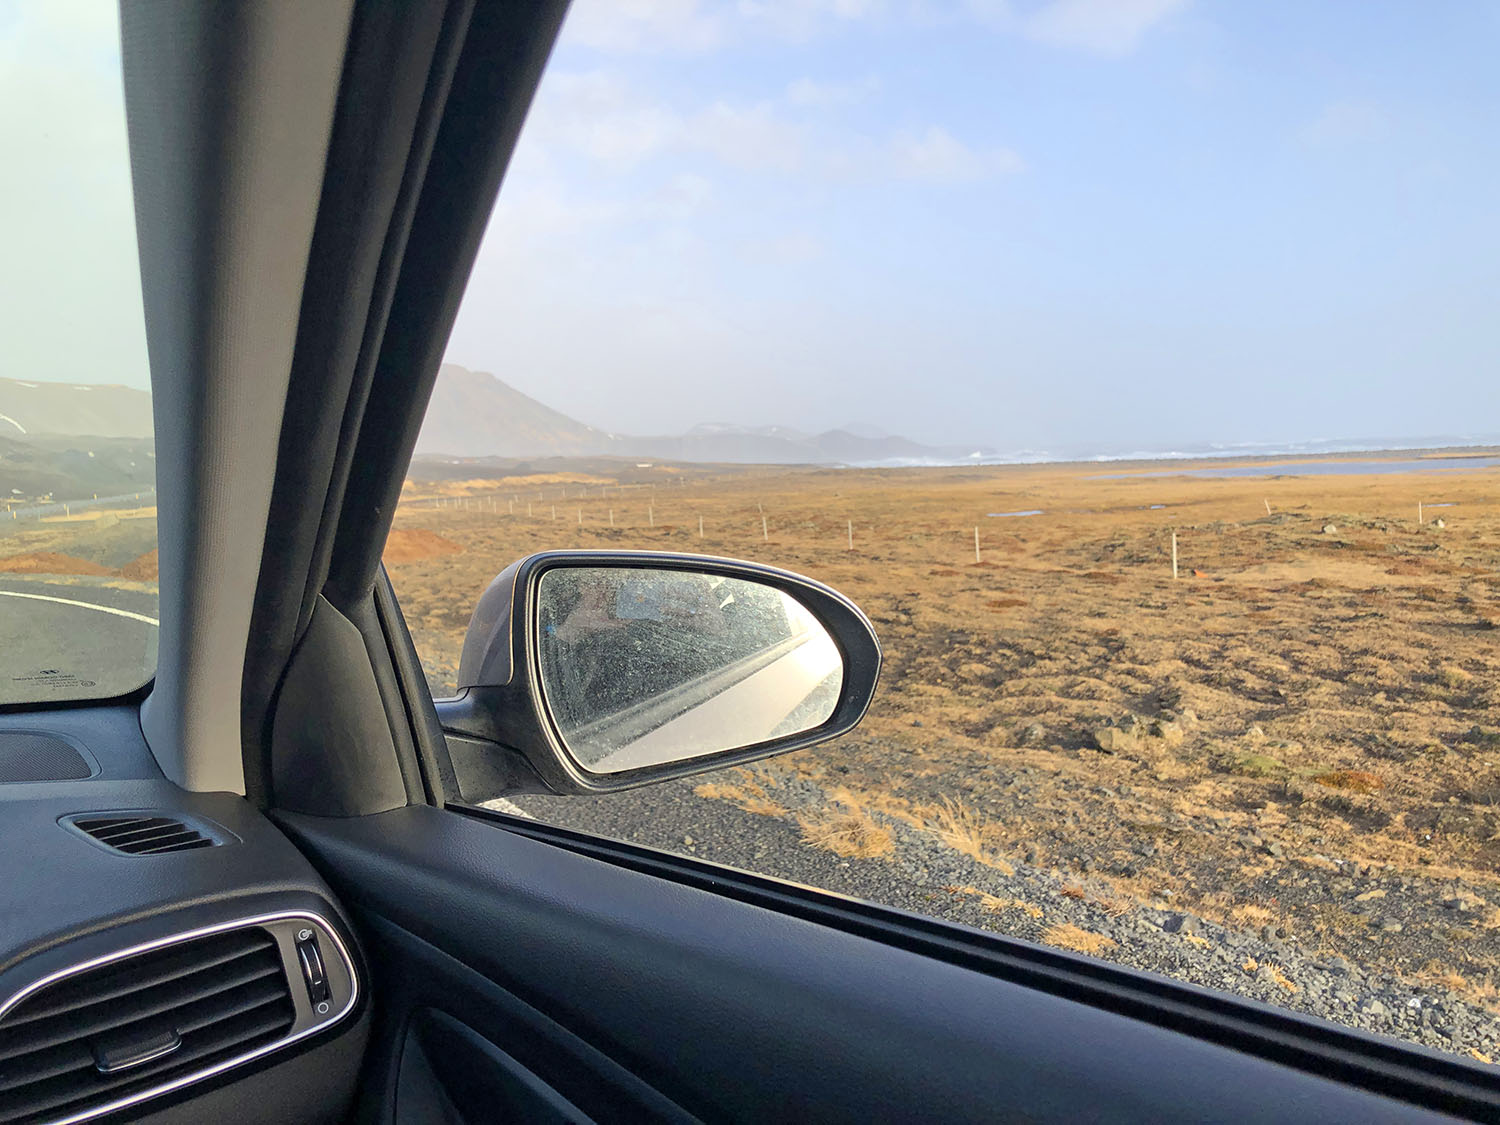 Driving a rental car in Iceland rental car tips iceland